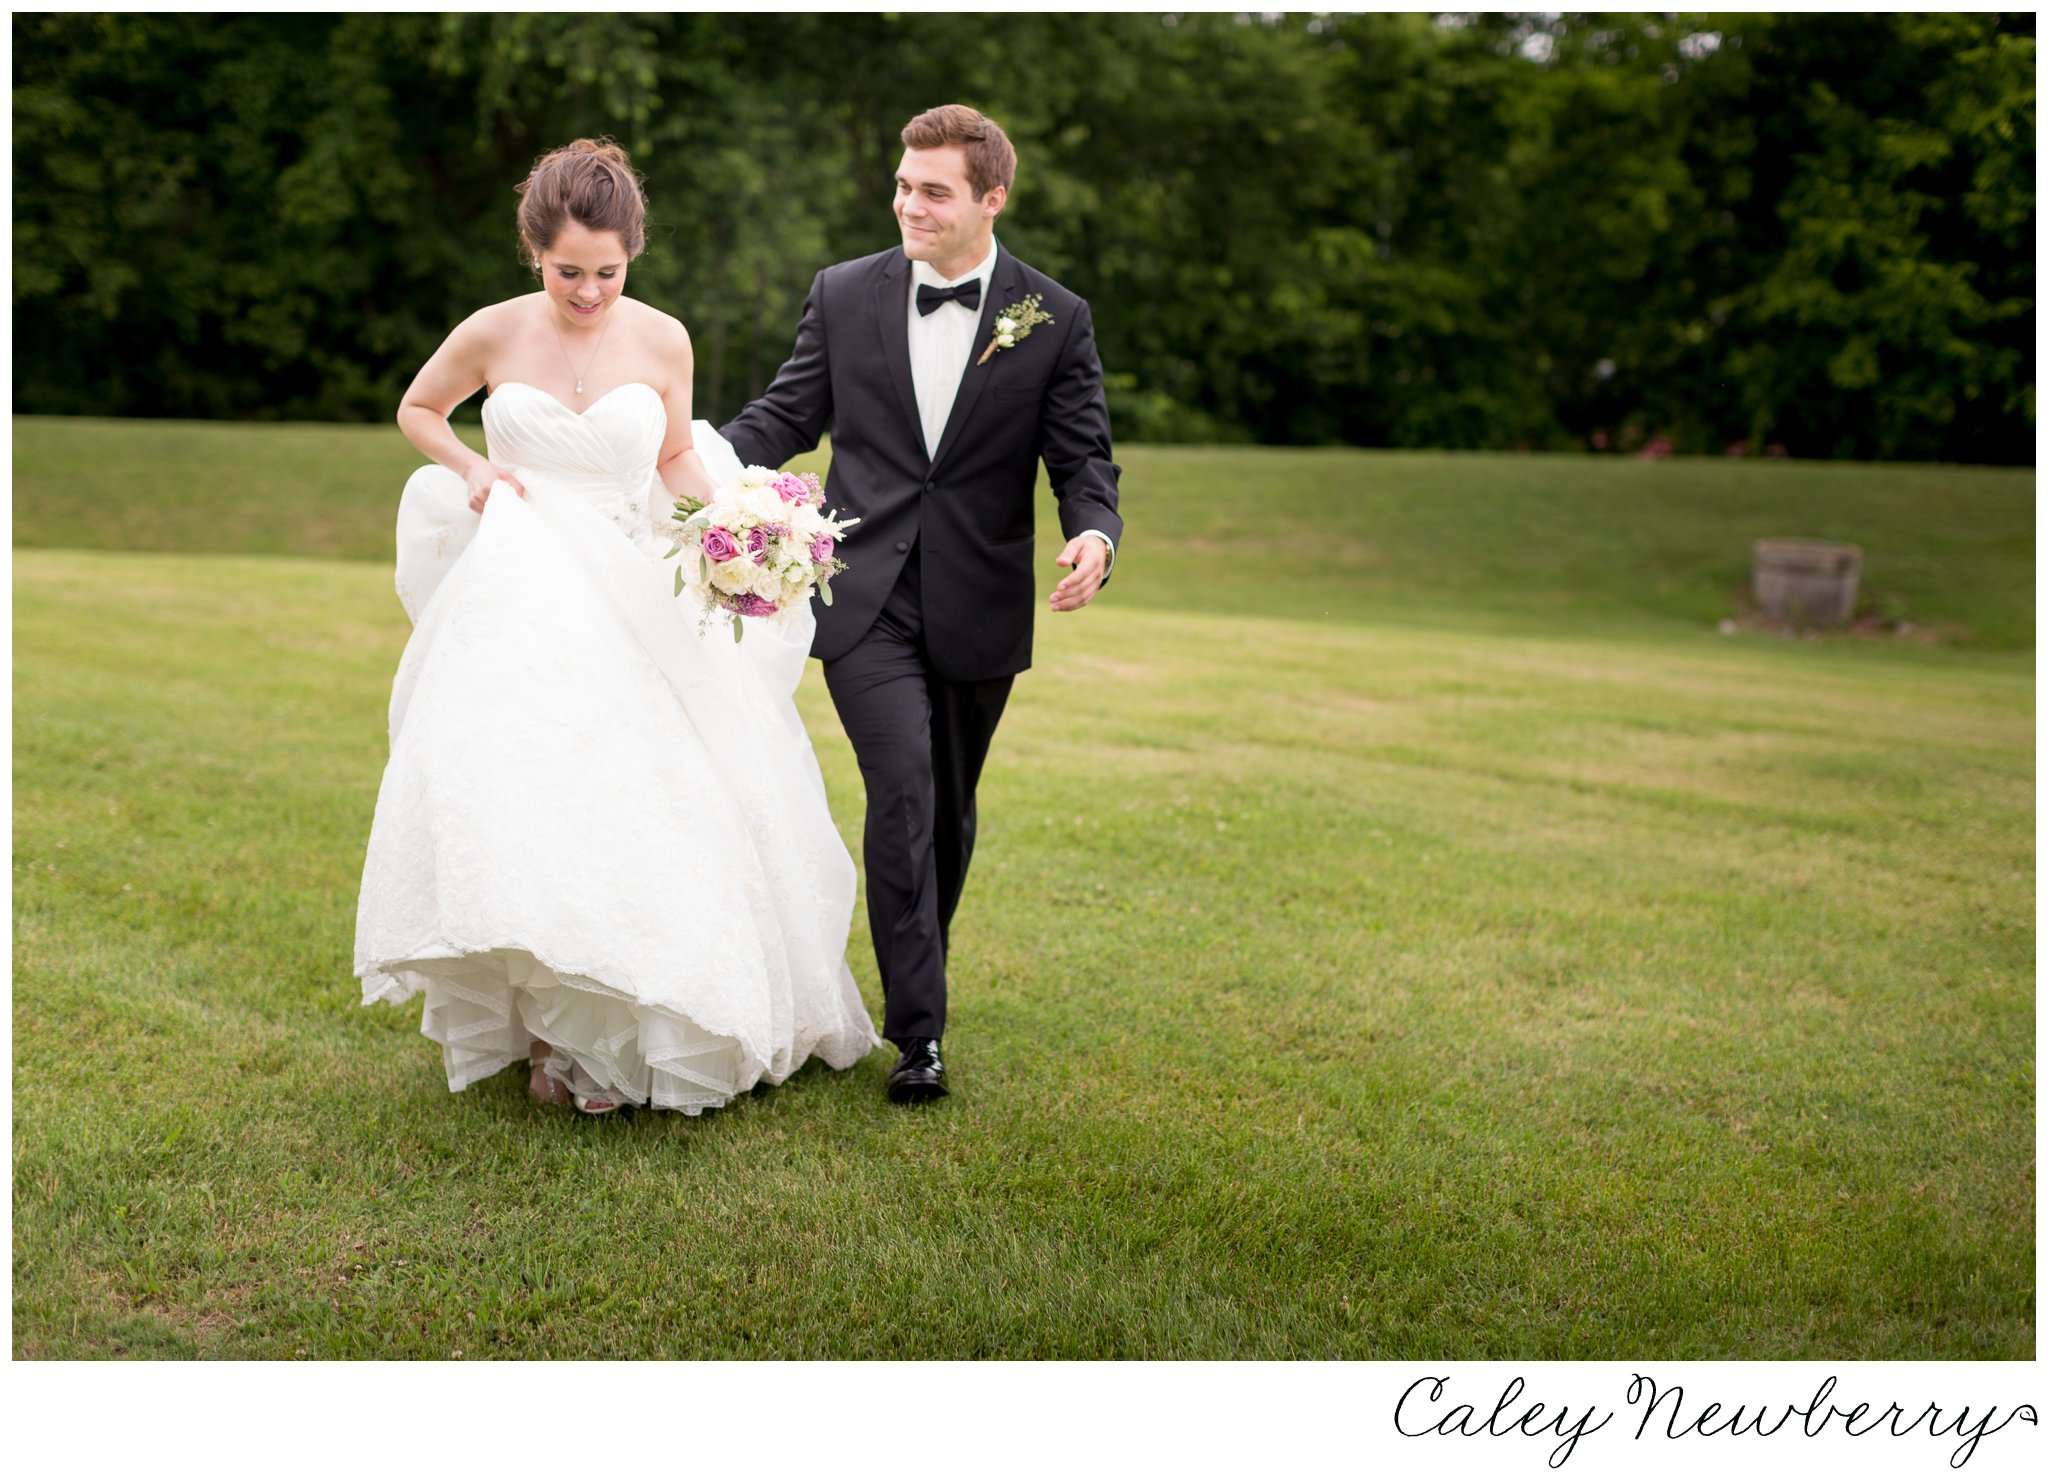 nashville-wedding-photographer-caley-newberry.jpg